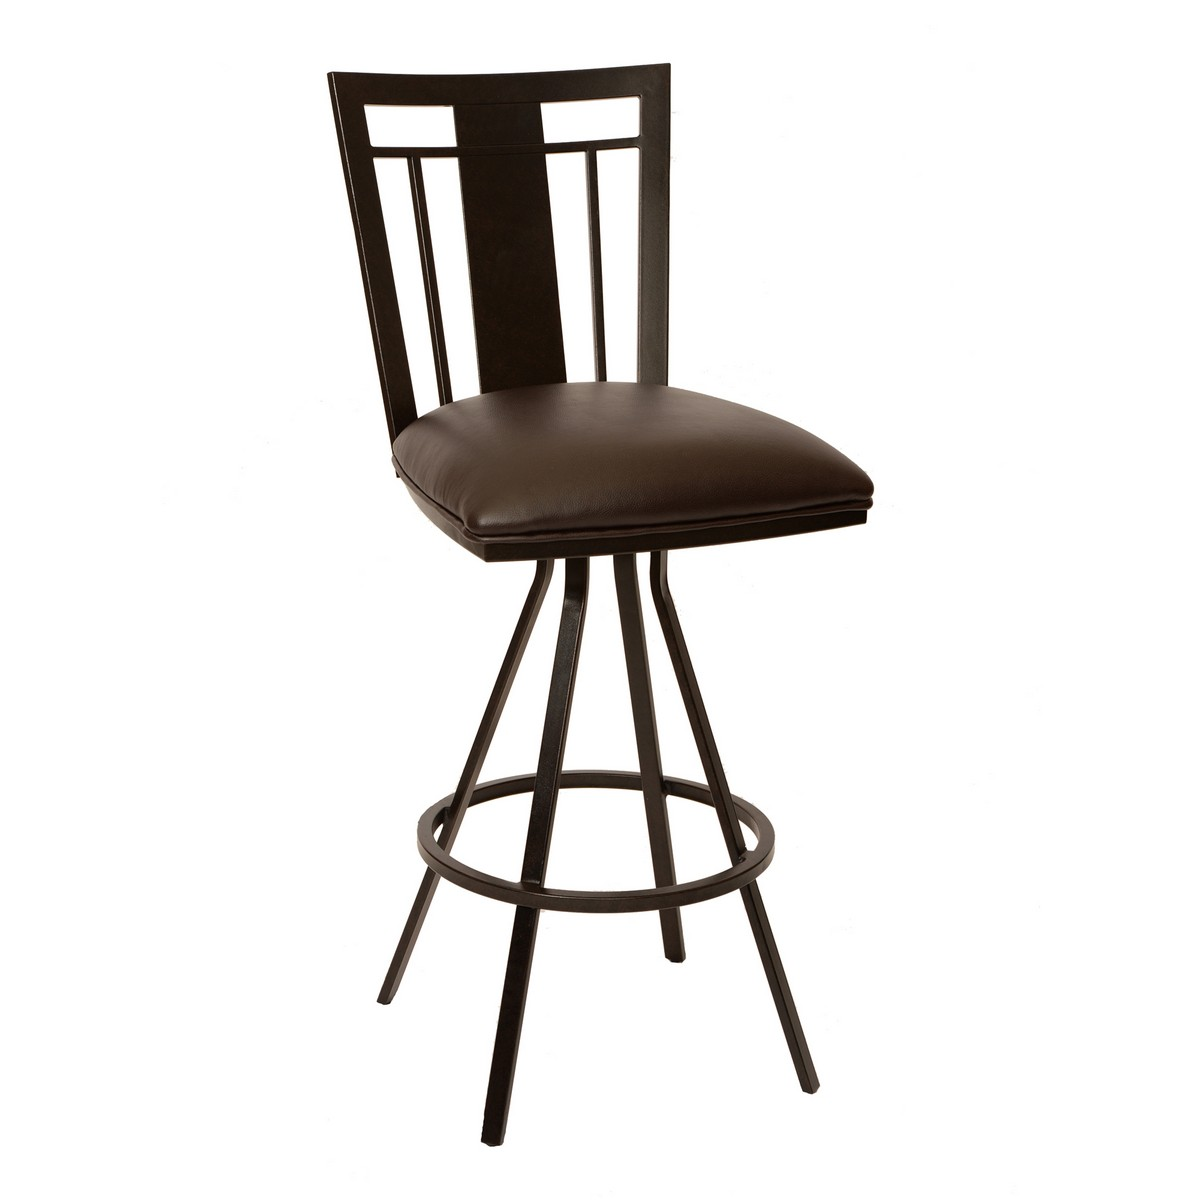 Armen Living Cleo 30-inch Transitional Barstool In Coffee and Auburn Bay Metal